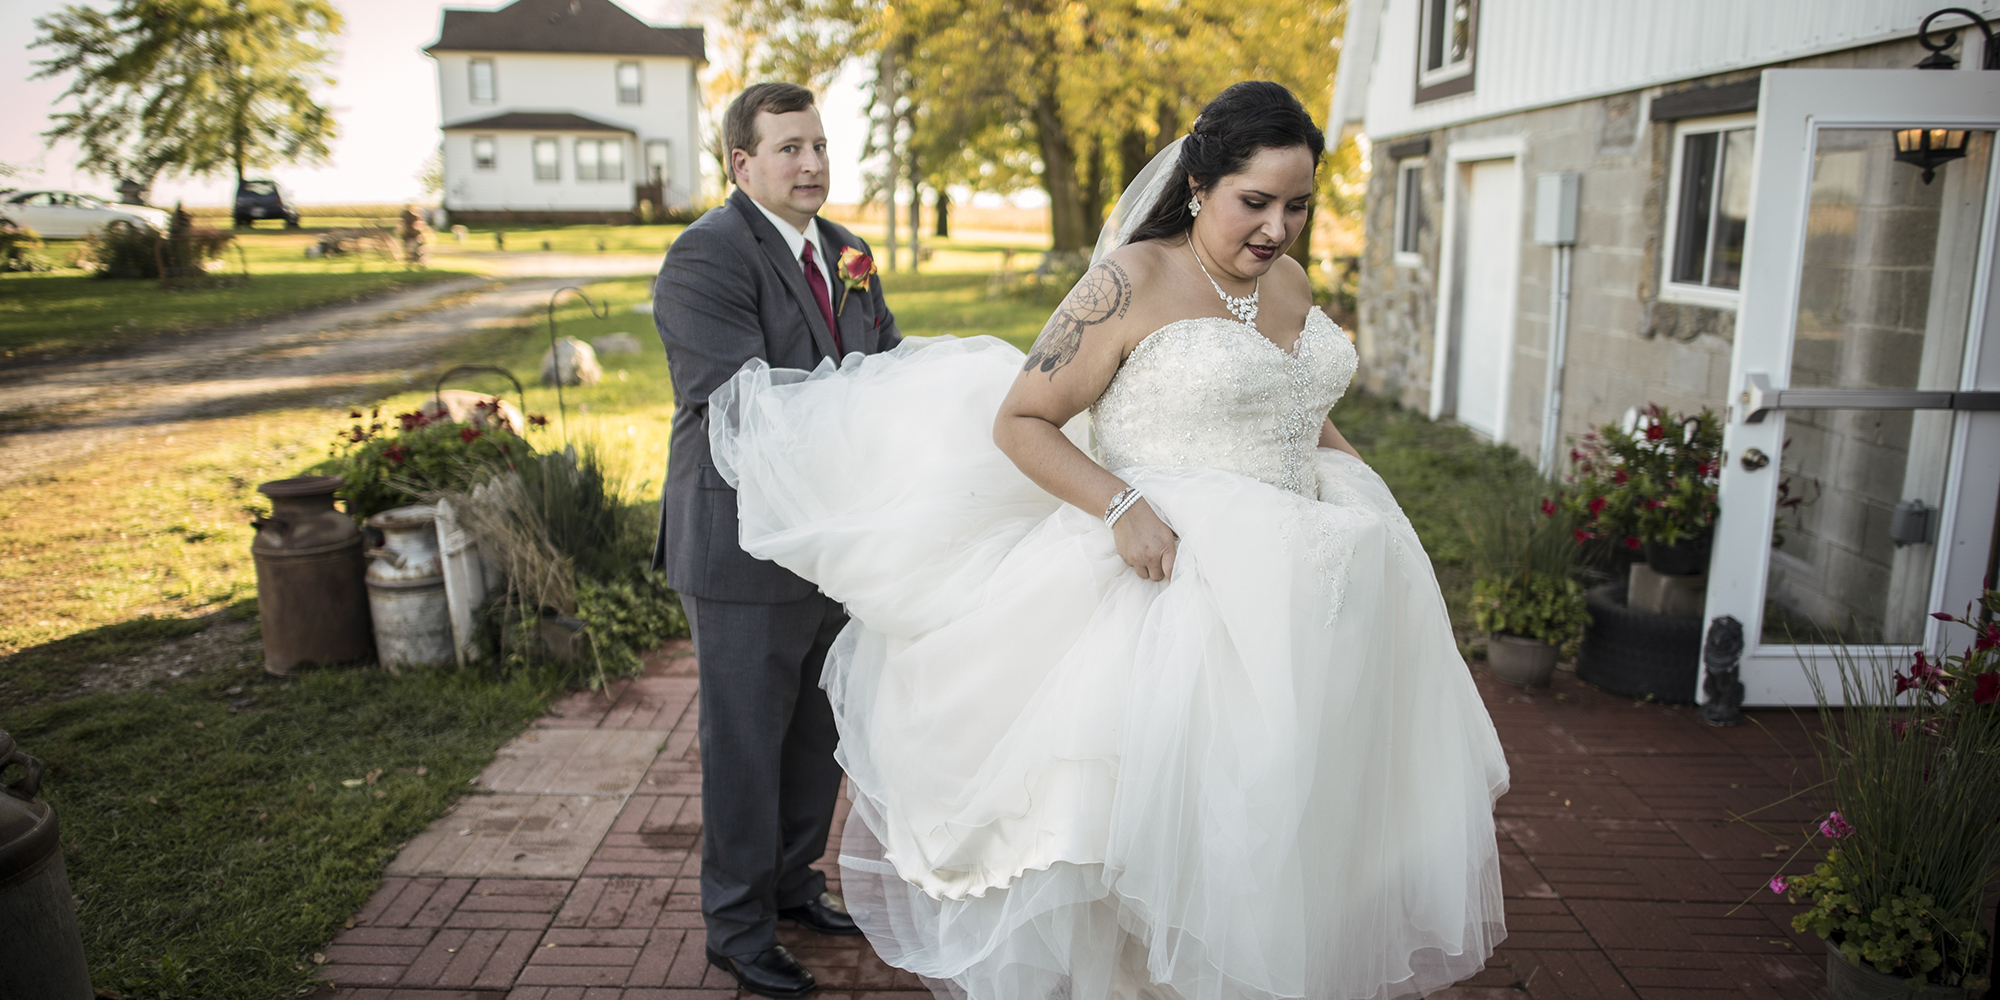 groom holding wedding dress